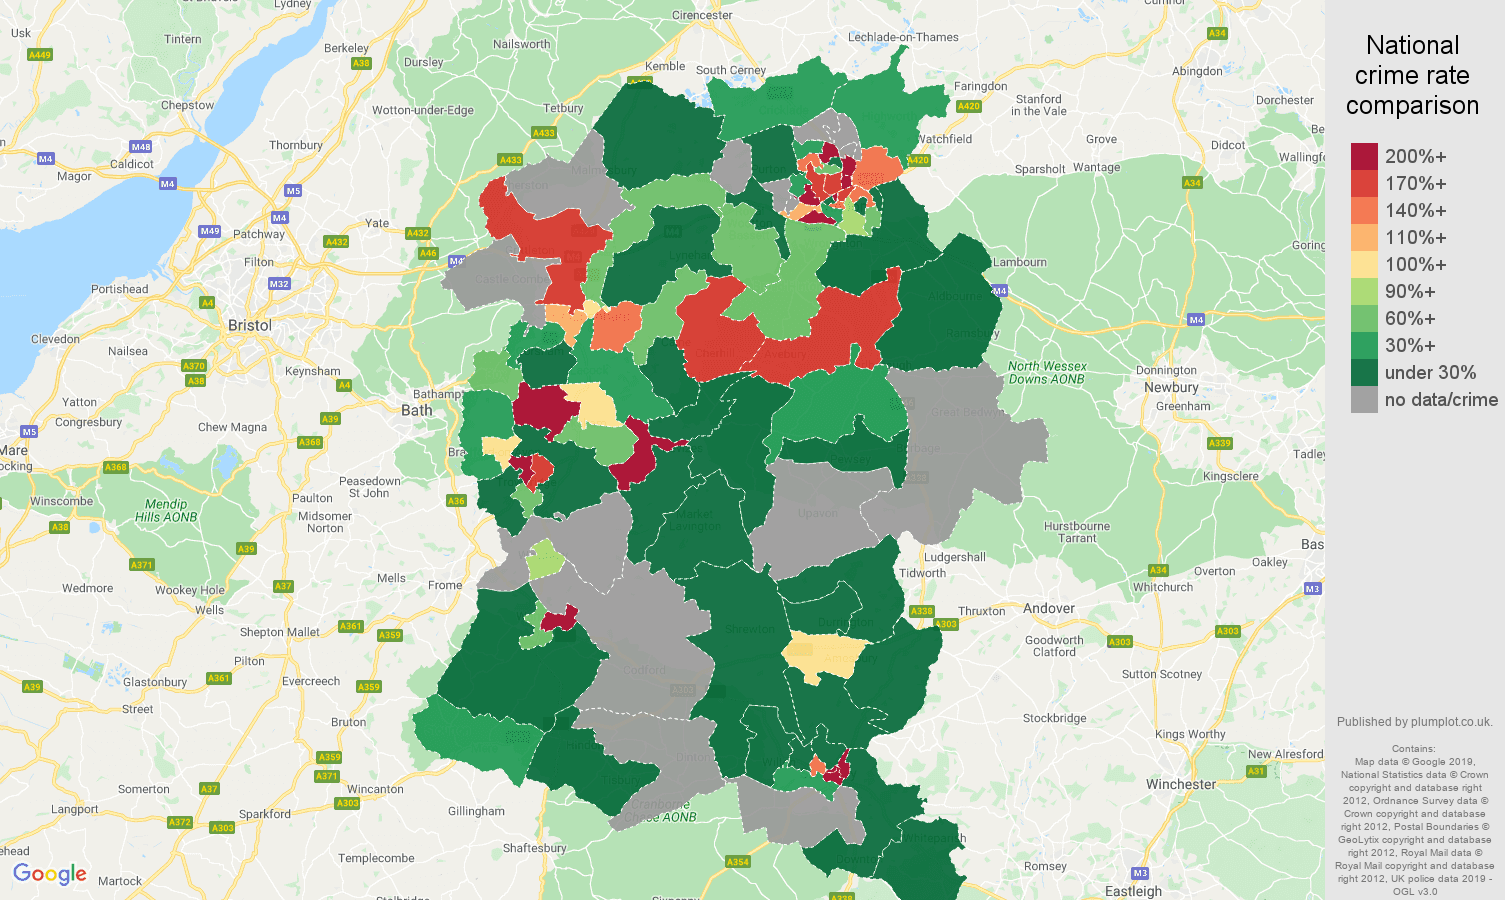 Wiltshire shoplifting crime rate comparison map